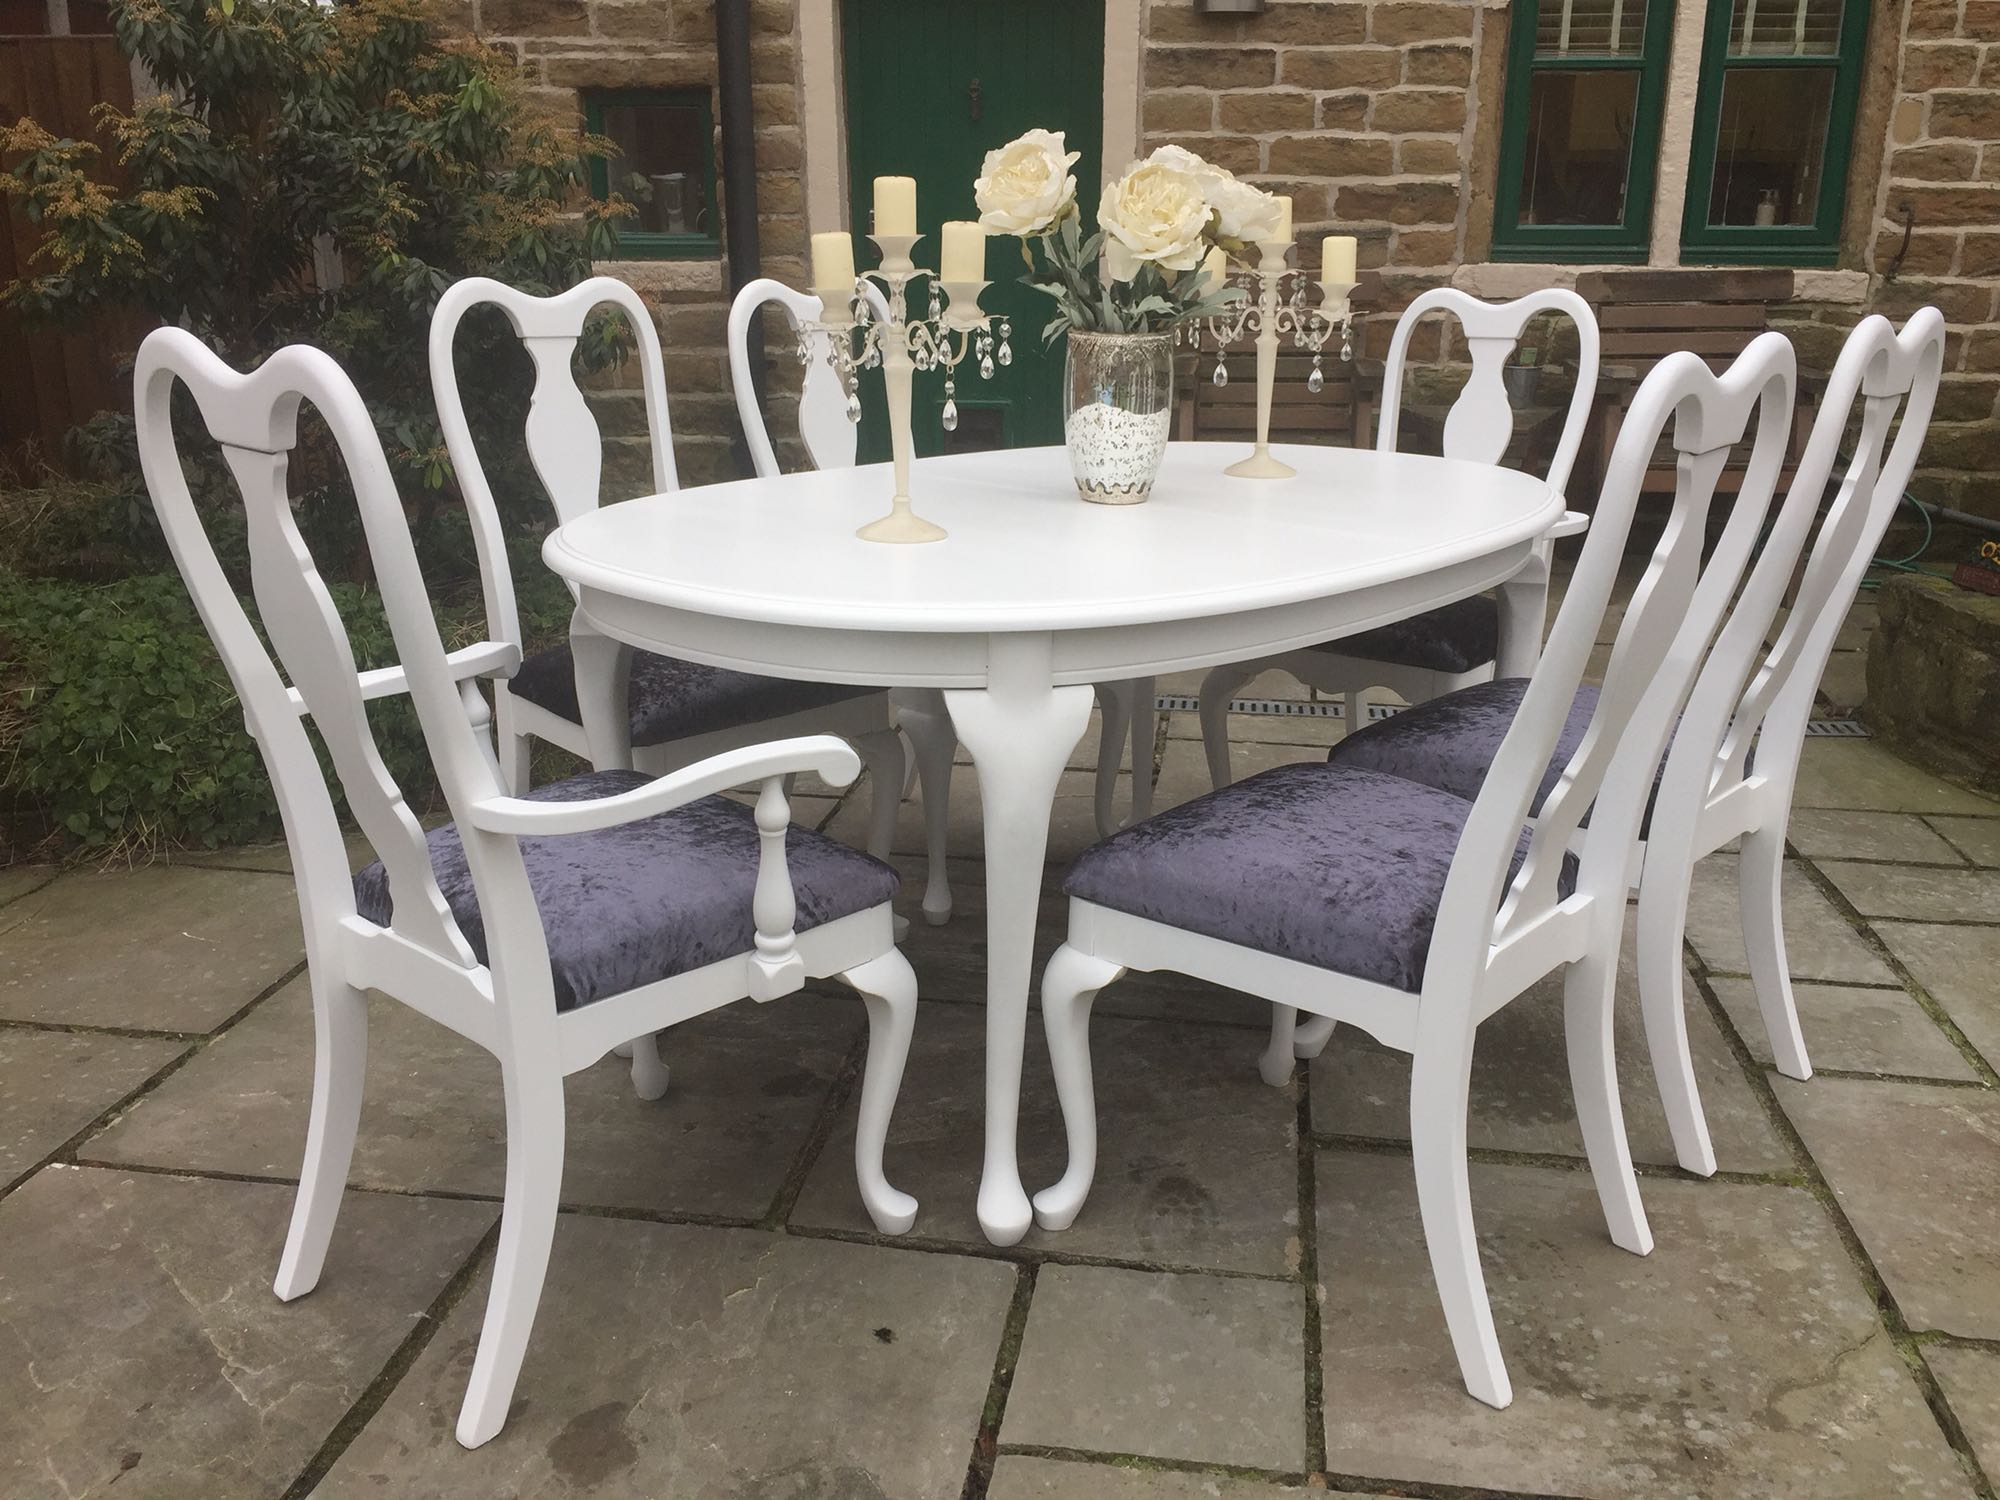 Vintage Dining Chairs For Sale In UK View 117 Bargains